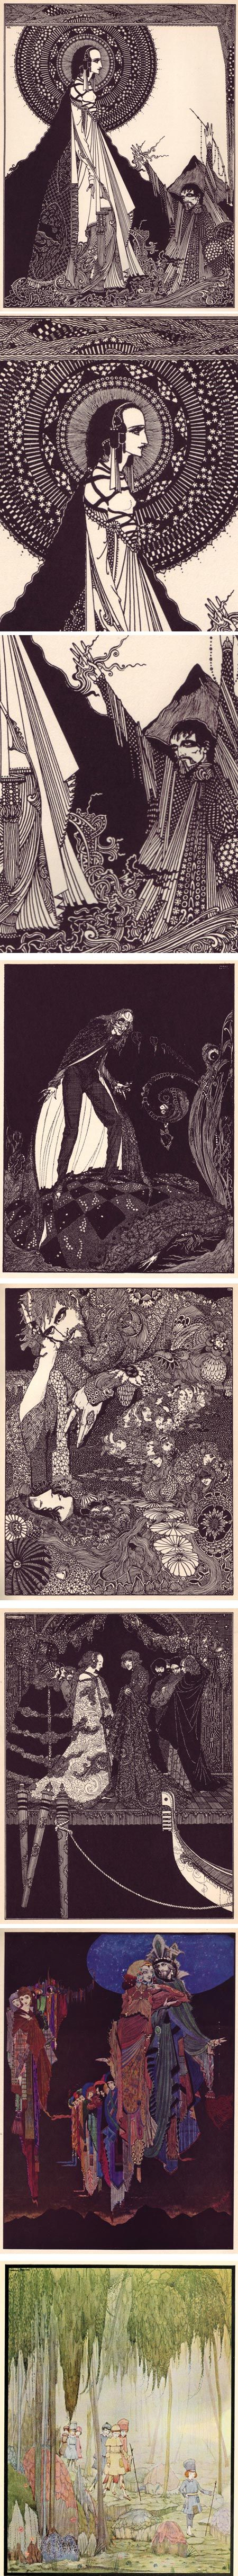 Harry Clarke was a Irish illustrator and stained glass artist, active in the early 20th Century, in the latter part of the Golden Age of Illustration.